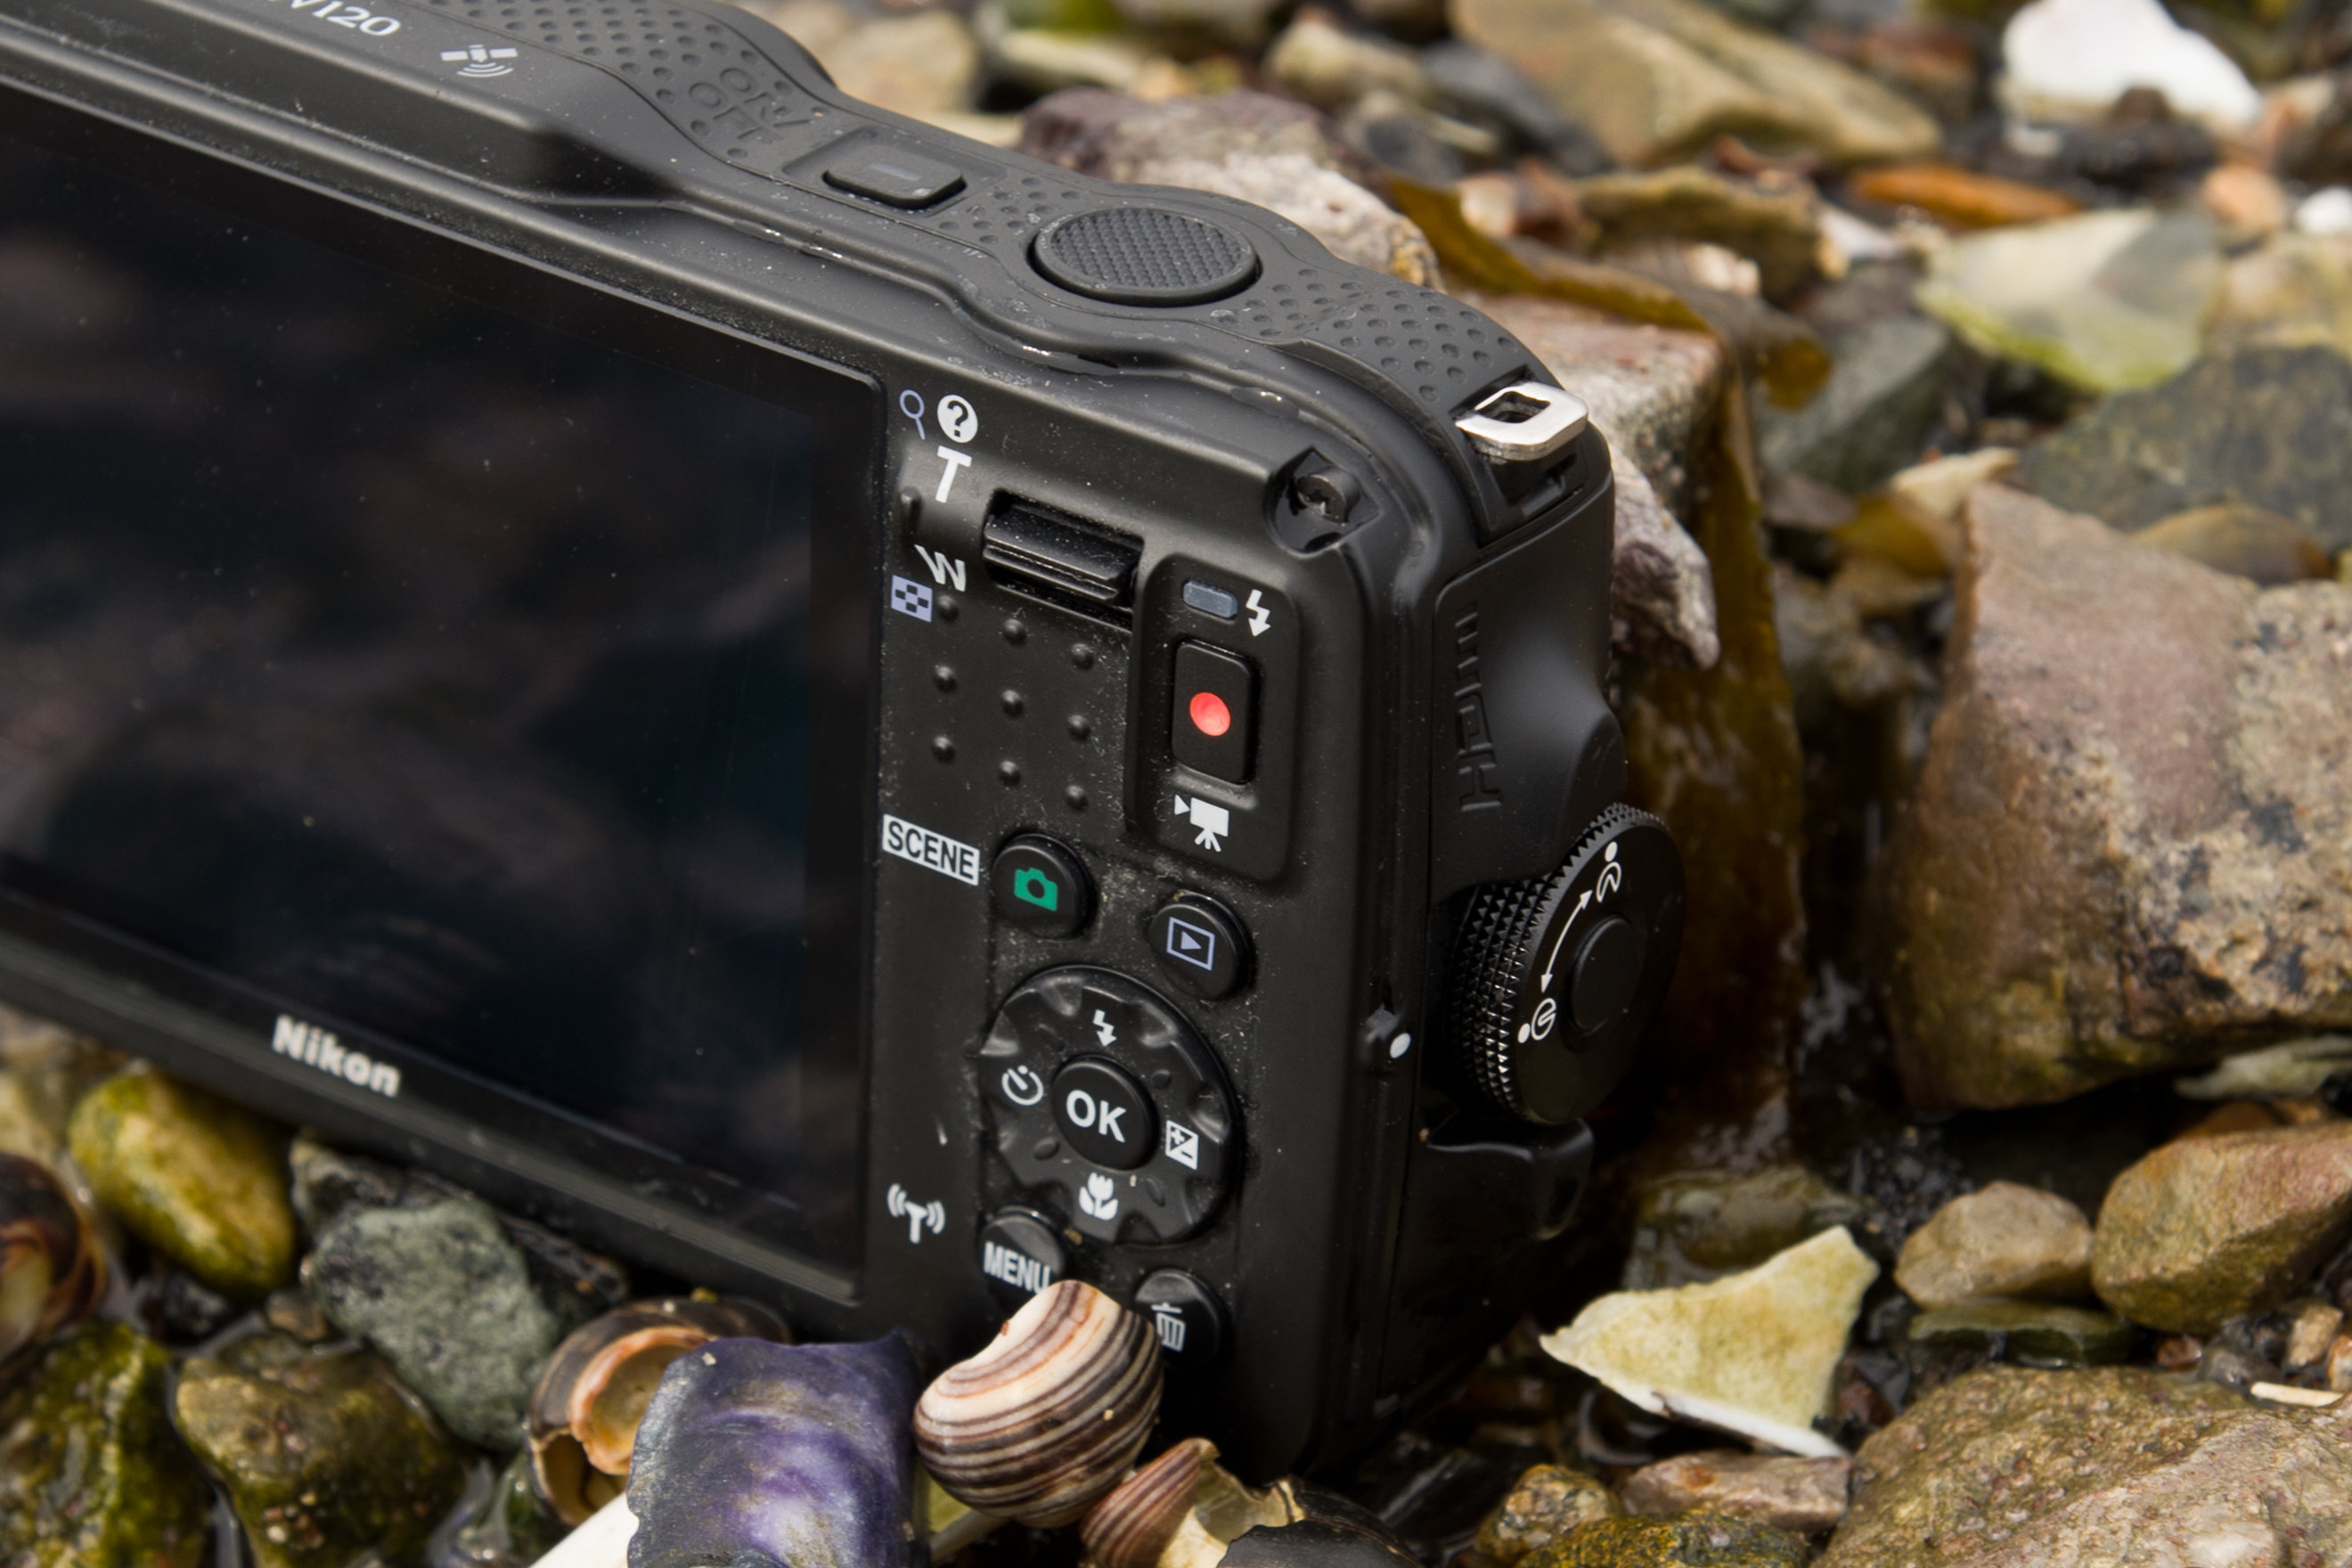 A shot of the Nikon Coolpix AW120's controls in the wild.